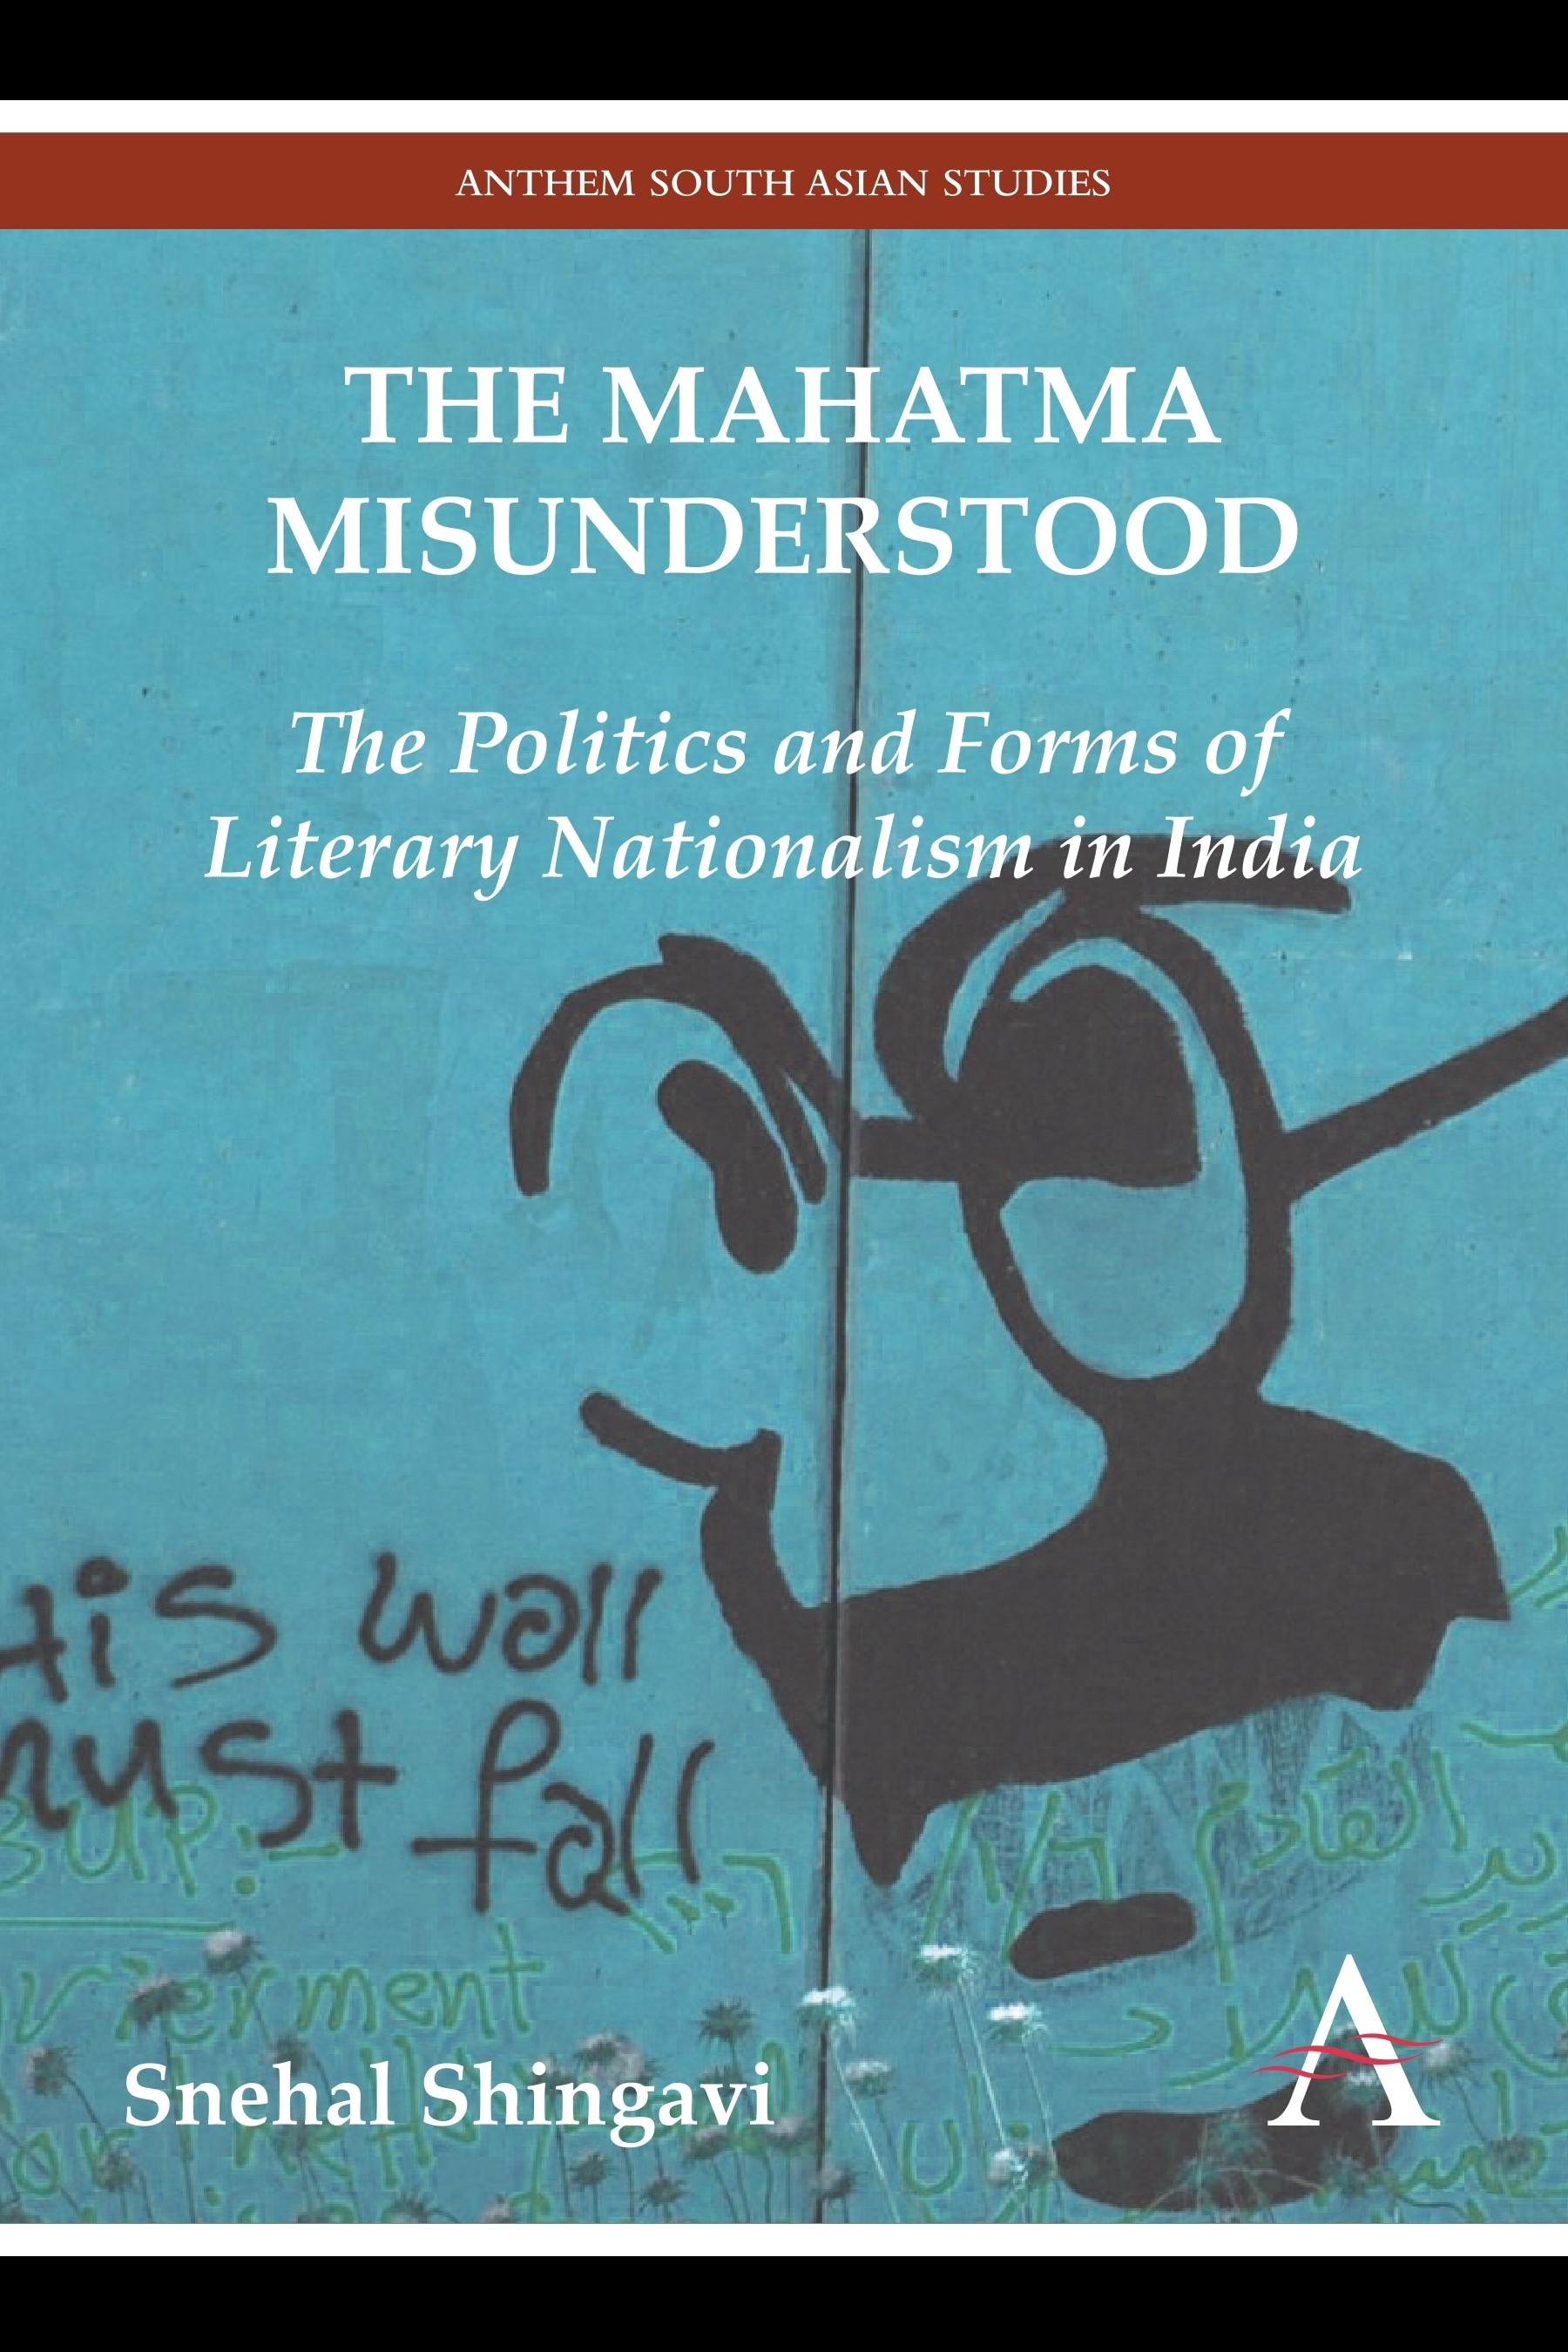 Book cover of The Mahatma Misunderstood